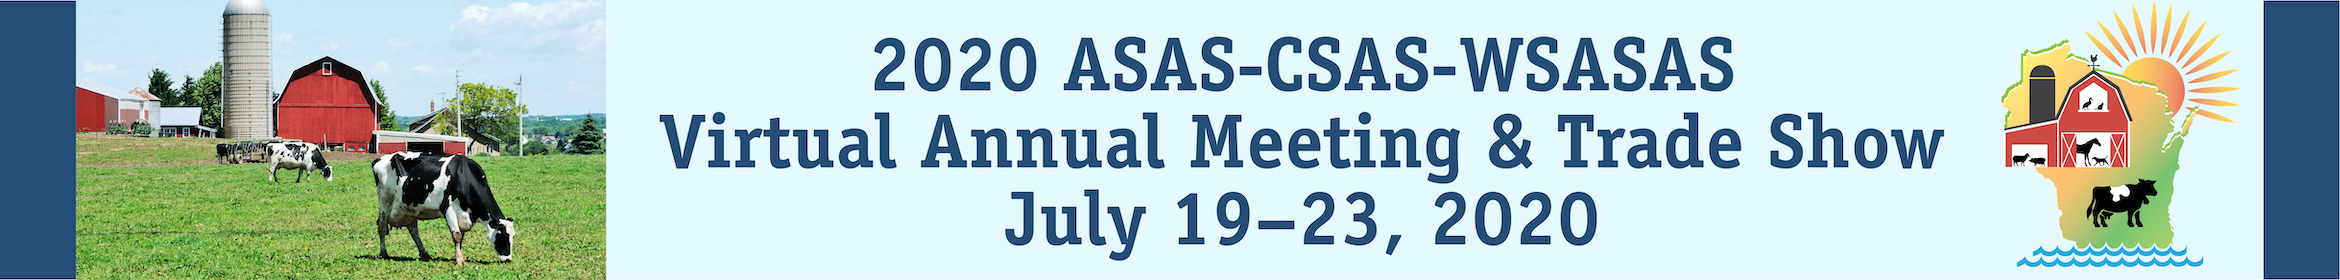 ASAS-CSAS-WSASAS 2020 Virtual Annual Meeting Main banner